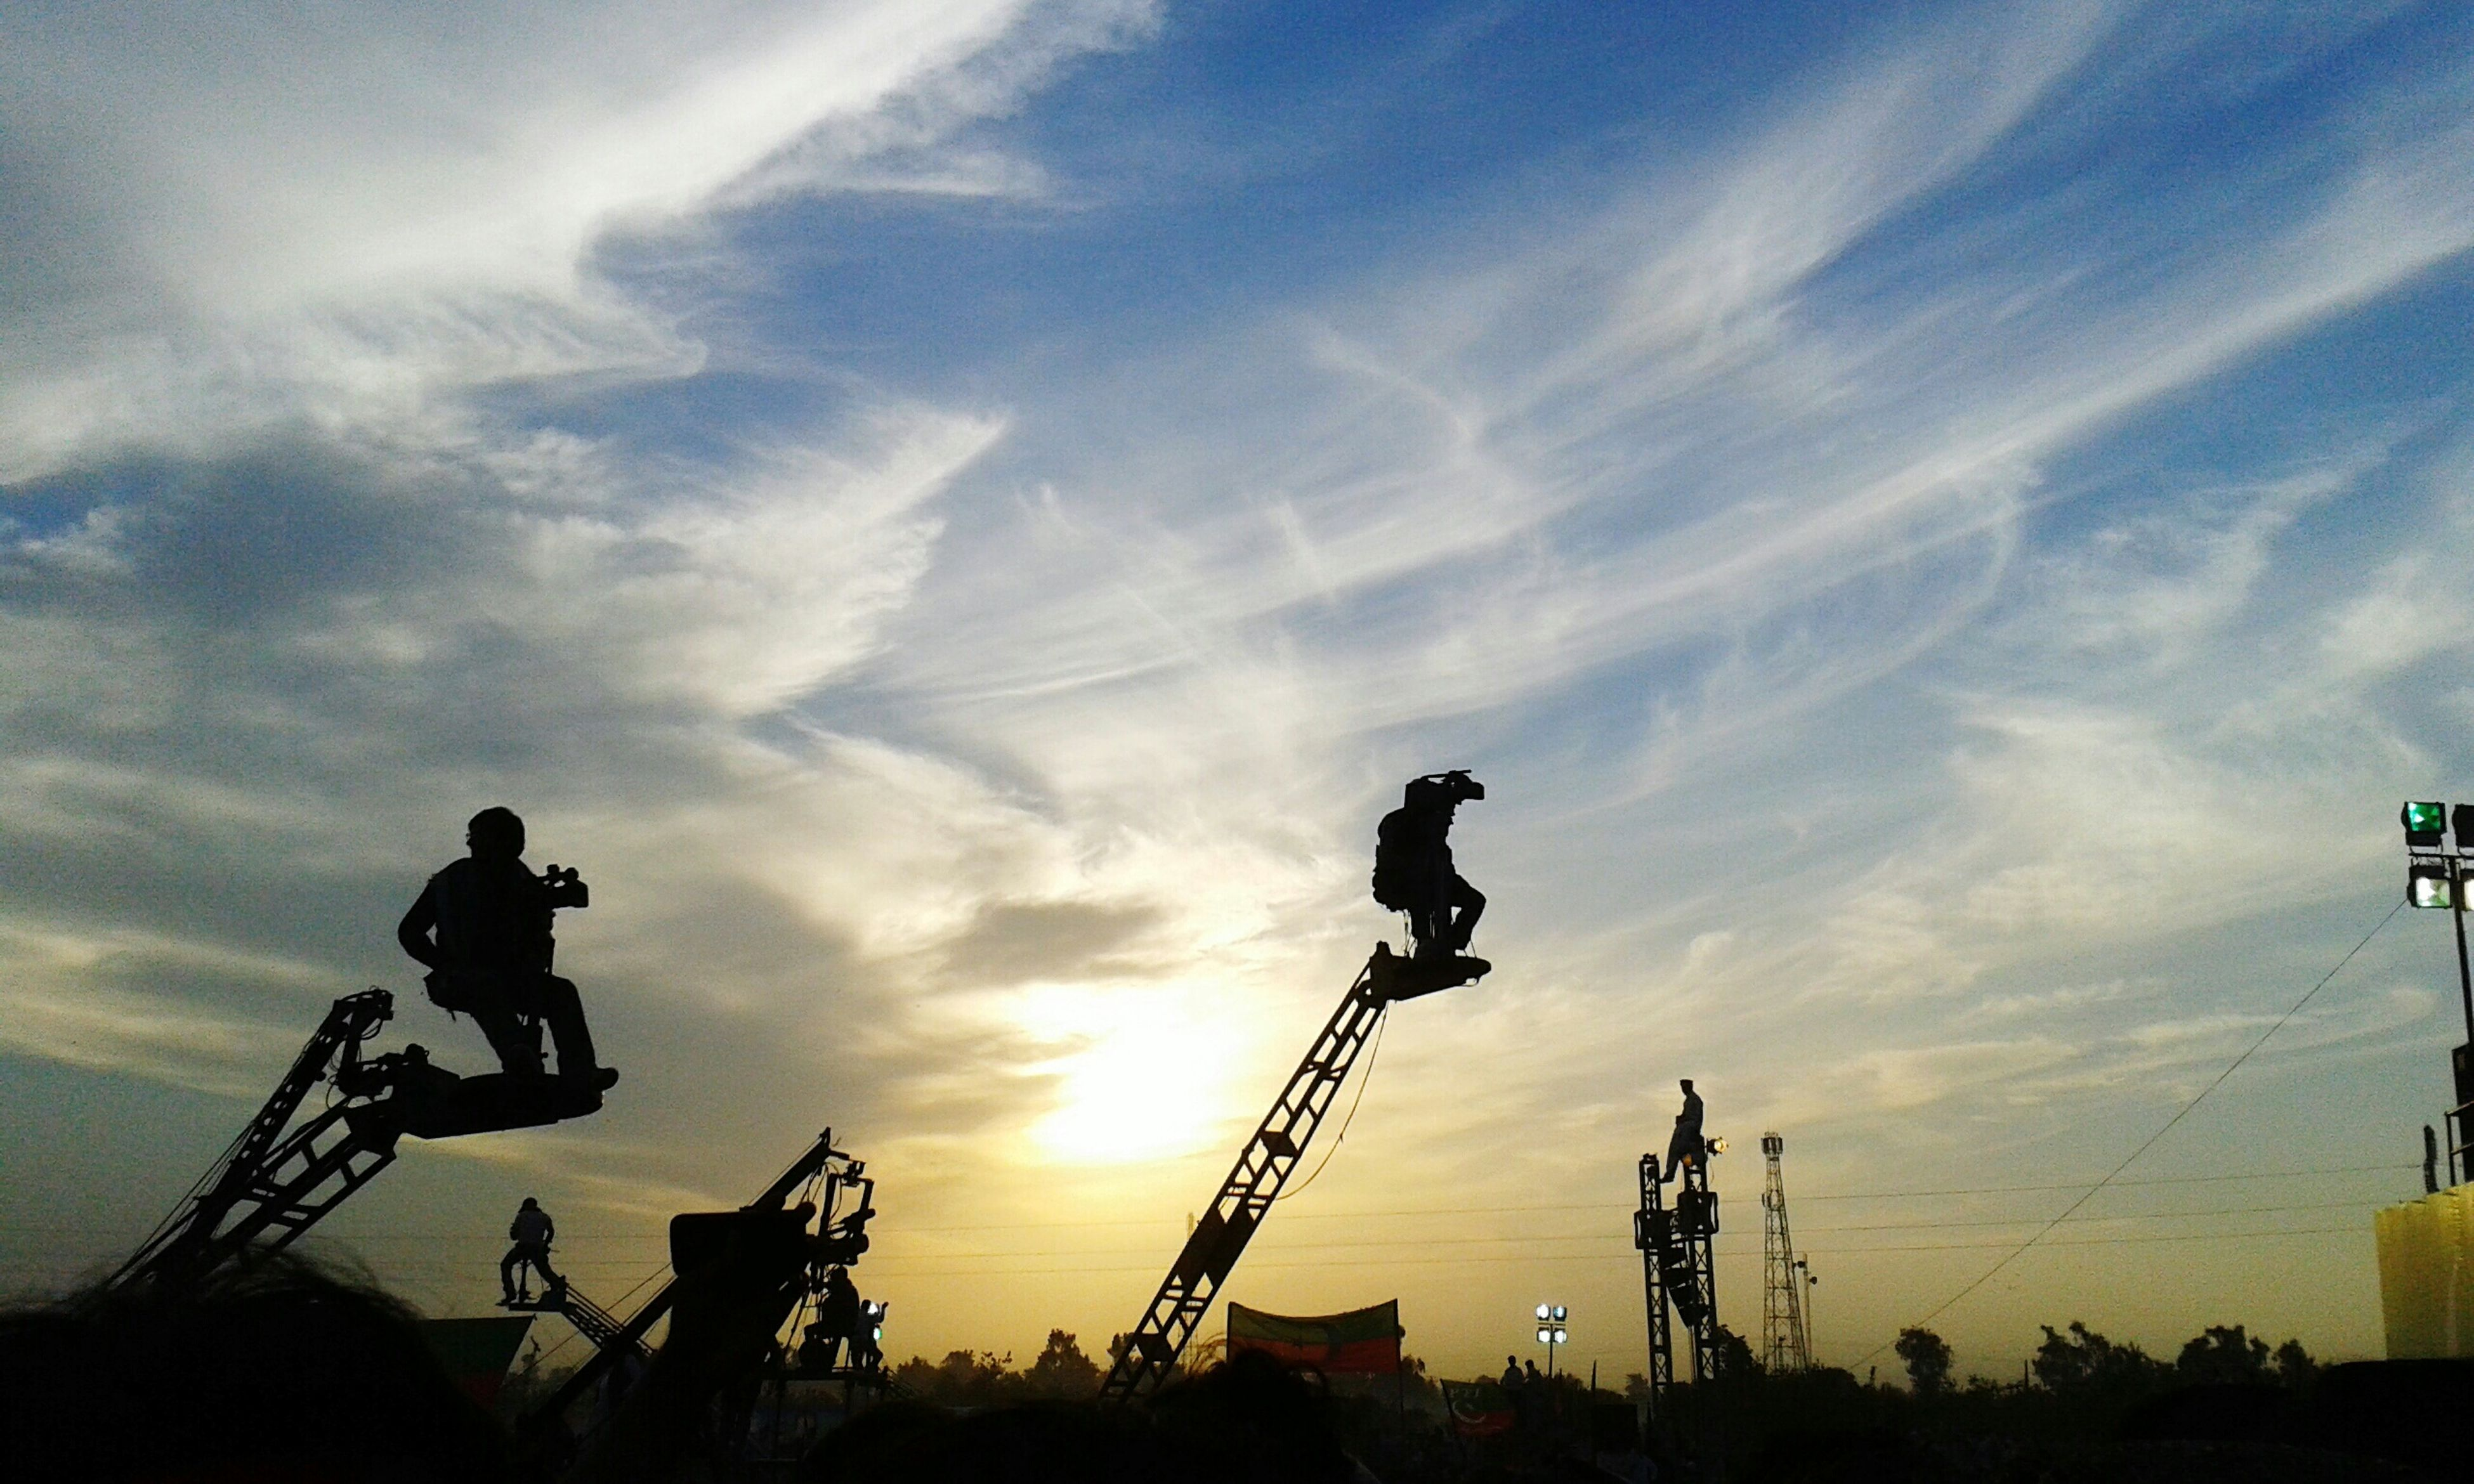 sky, silhouette, low angle view, sunset, cloud - sky, leisure activity, men, lifestyles, cloud, bicycle, outdoors, technology, sunlight, street light, nature, full length, cloudy